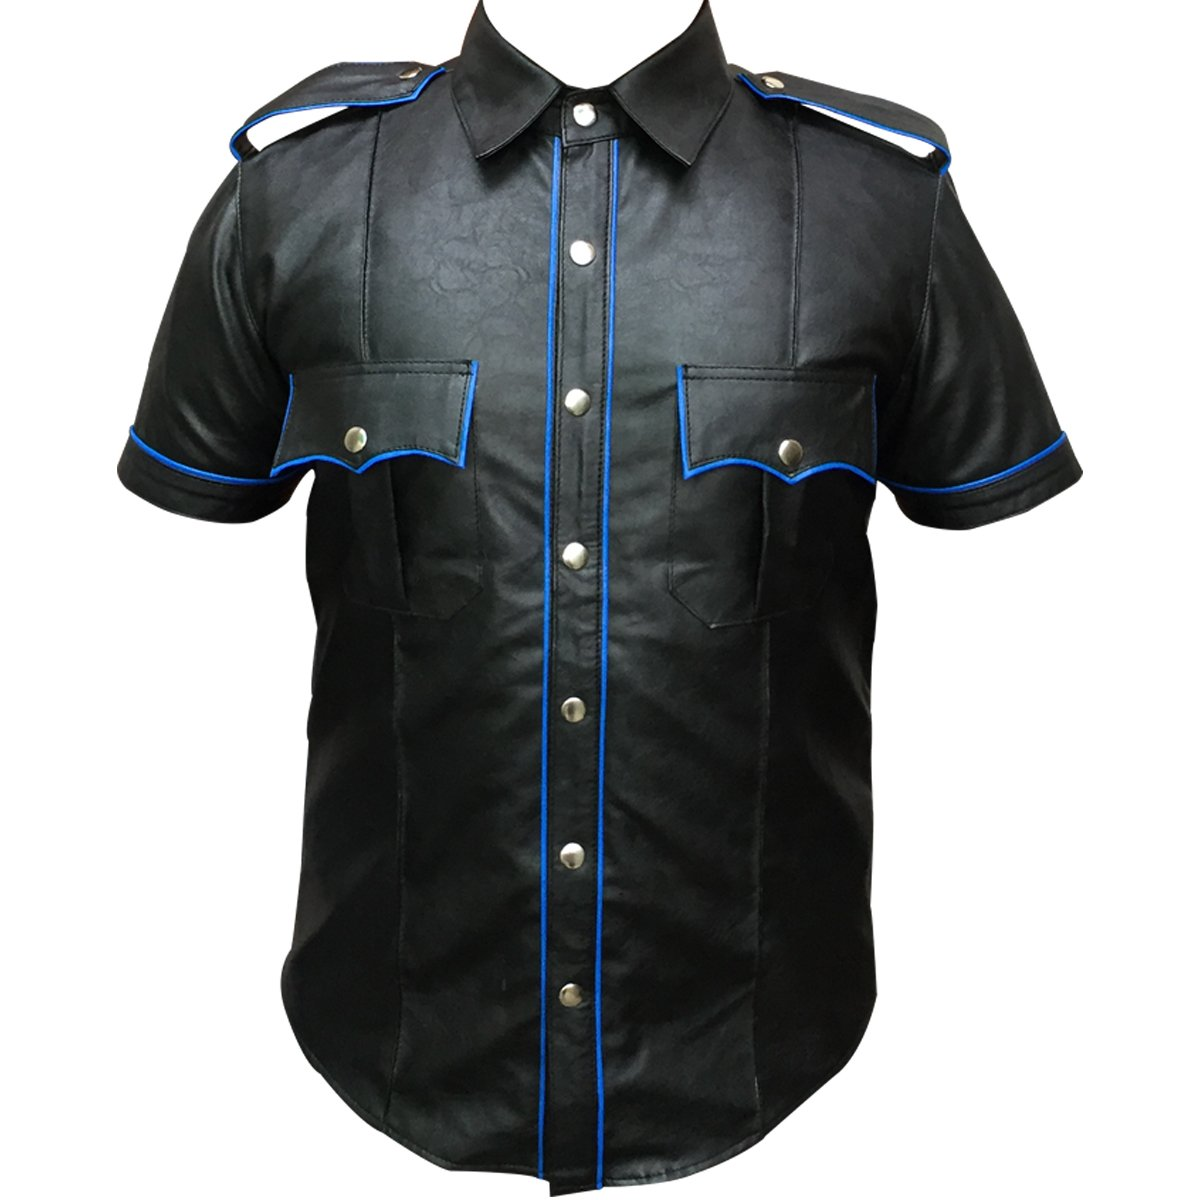 Pockets Cuffs PU Leather Mens Police Style Collar T Shirt with Blue Piping On Shoulders